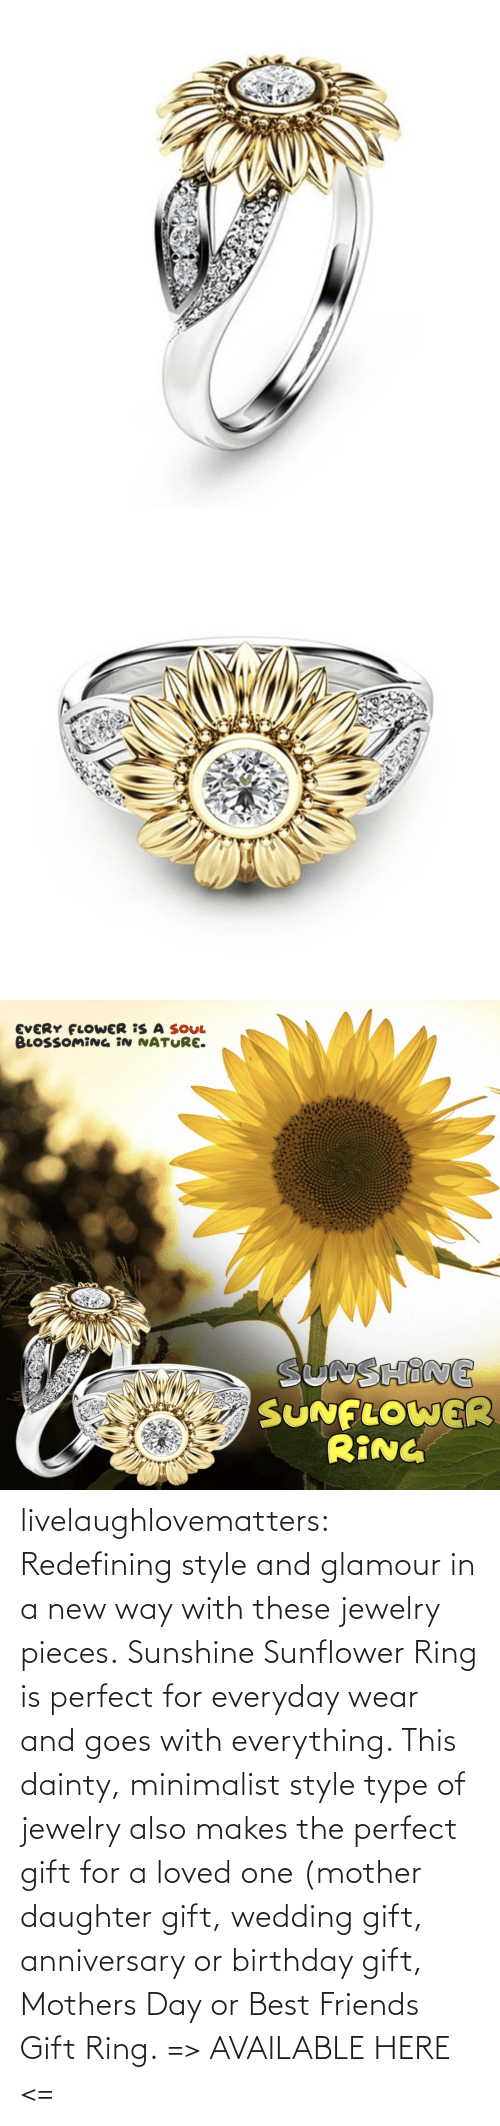 Birthday, Friends, and Mother's Day: livelaughlovematters:  Redefining style and glamour in a new way with these jewelry pieces. Sunshine Sunflower Ring is perfect for everyday wear and goes with everything. This dainty, minimalist style type of jewelry also makes the perfect gift for a loved one (mother daughter gift, wedding gift, anniversary or birthday gift, Mothers Day or Best Friends Gift Ring. => AVAILABLE HERE <=